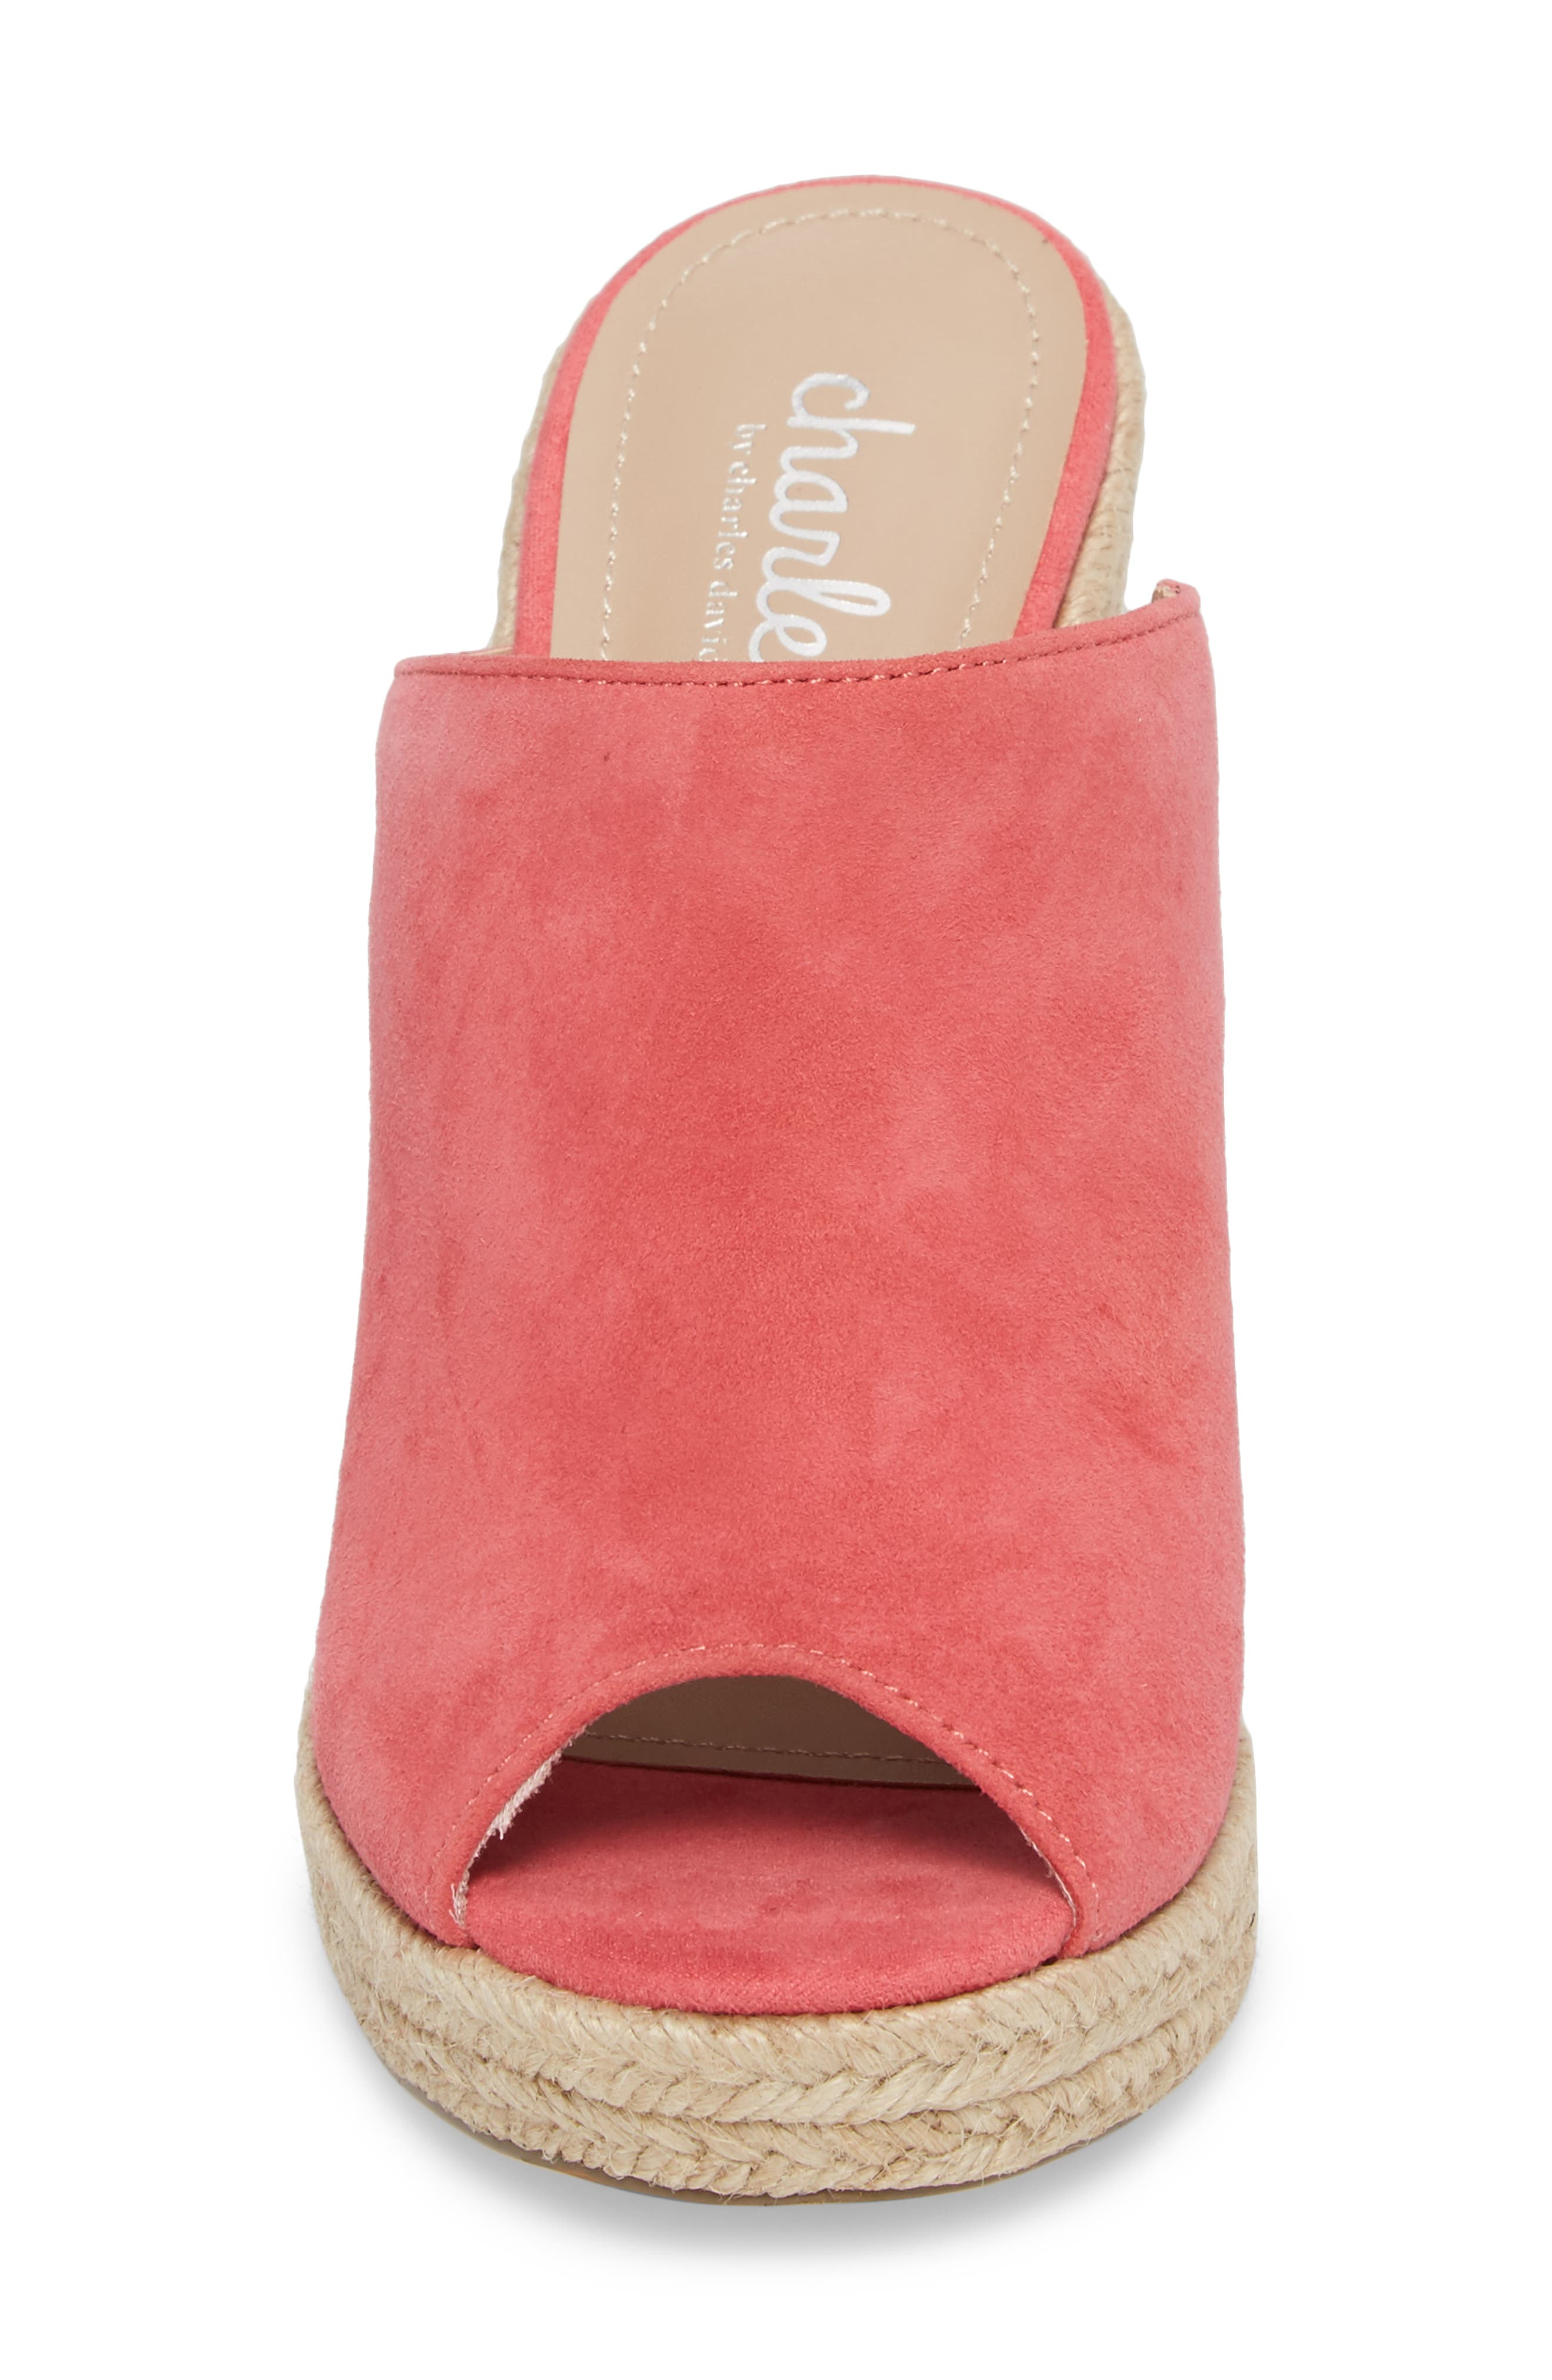 Balen Wedge,                             Alternate thumbnail 8, color,                             Coral Suede